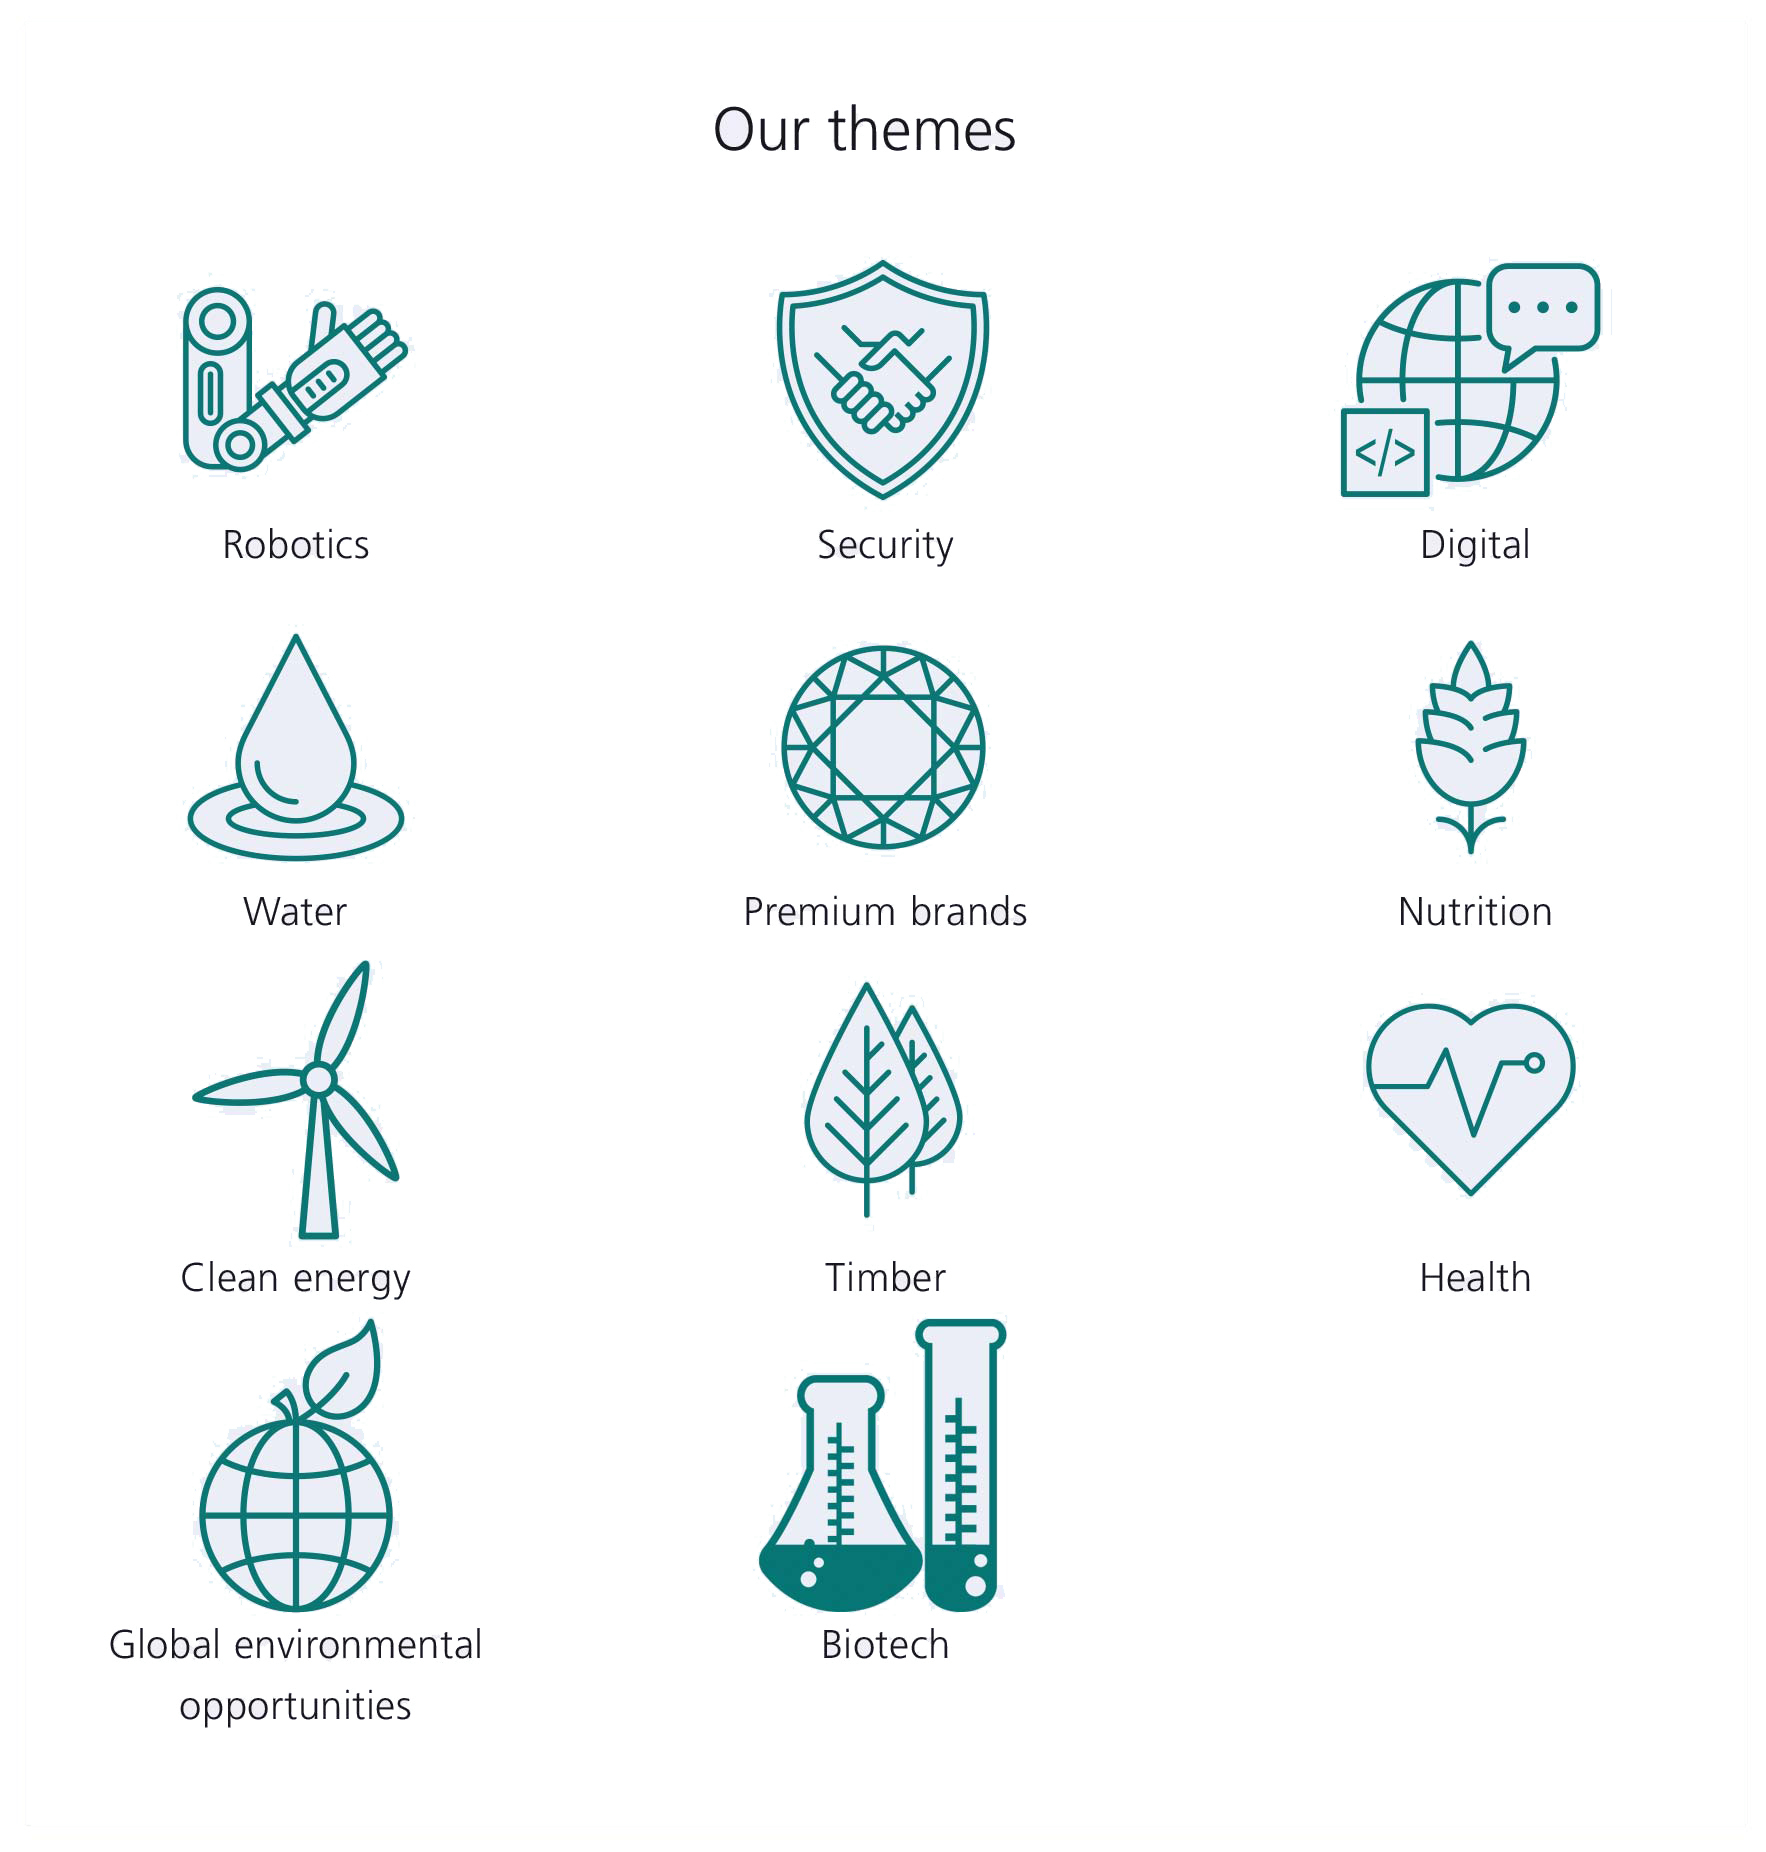 Our Themes: robotics, security, digital, water, premium brand, nutrition, clean energy, timber, health, global health opportunities, biotech.